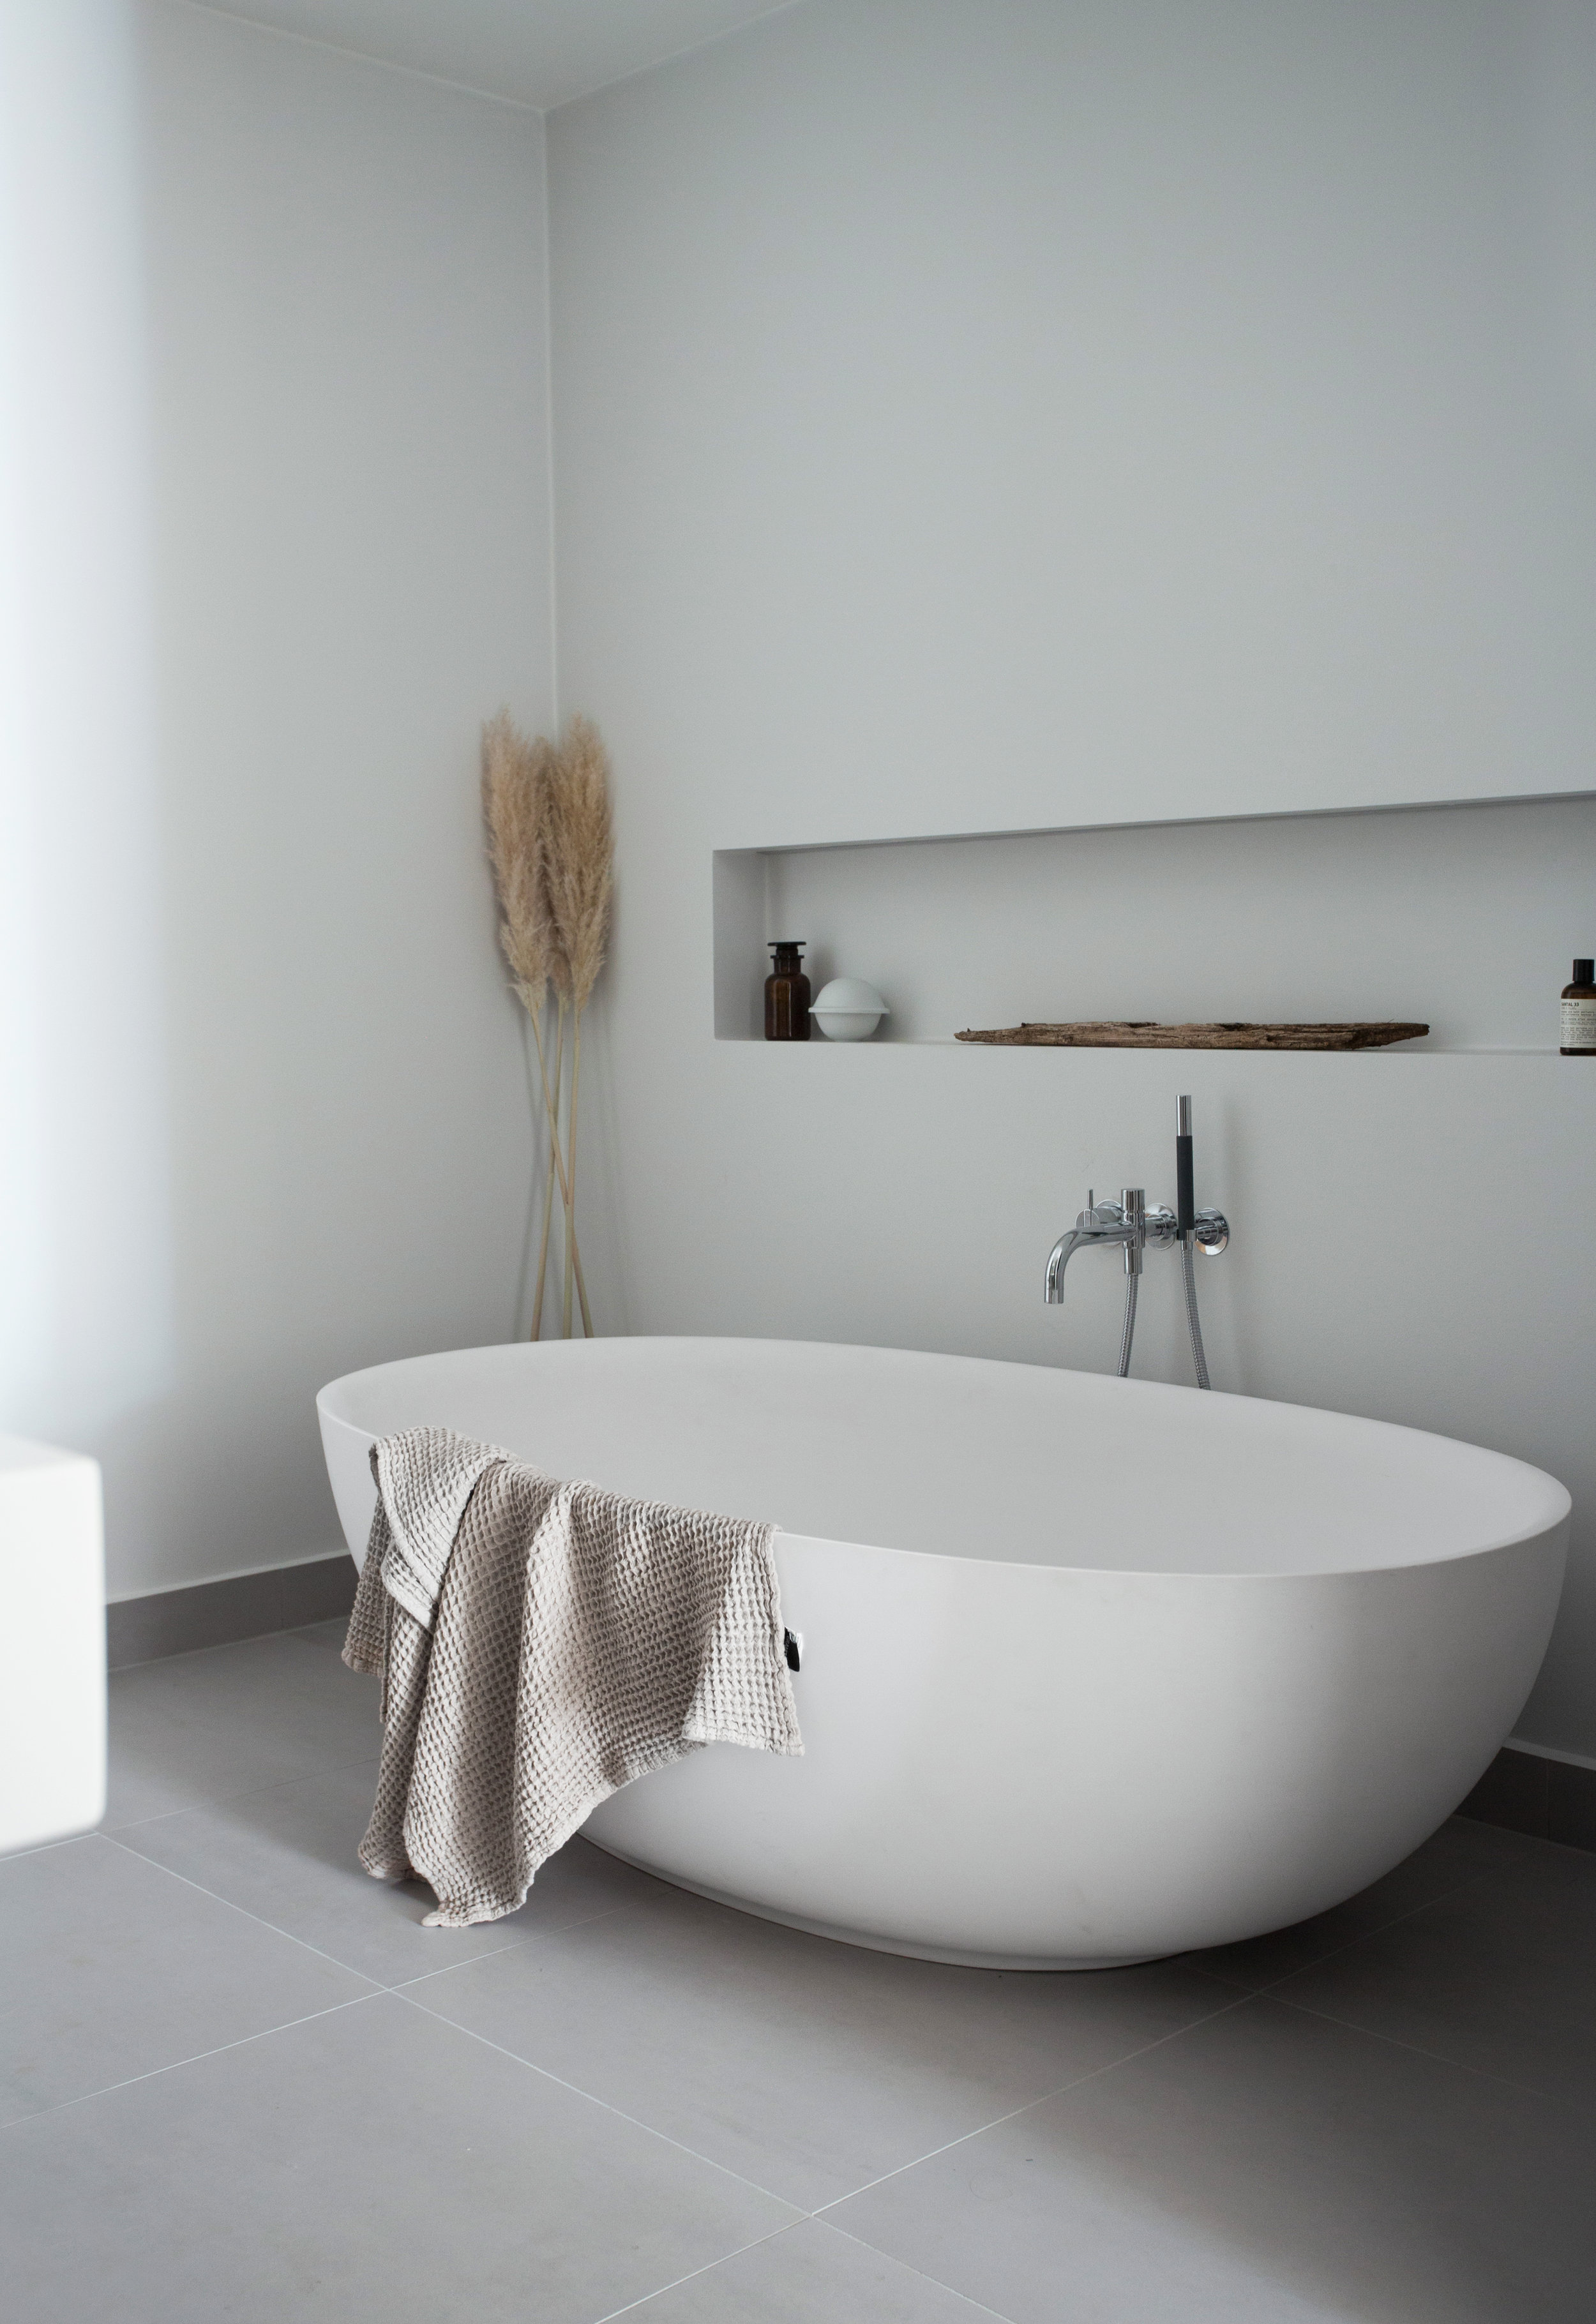 Bathroom design and styling my home, photo Filippa Tredal